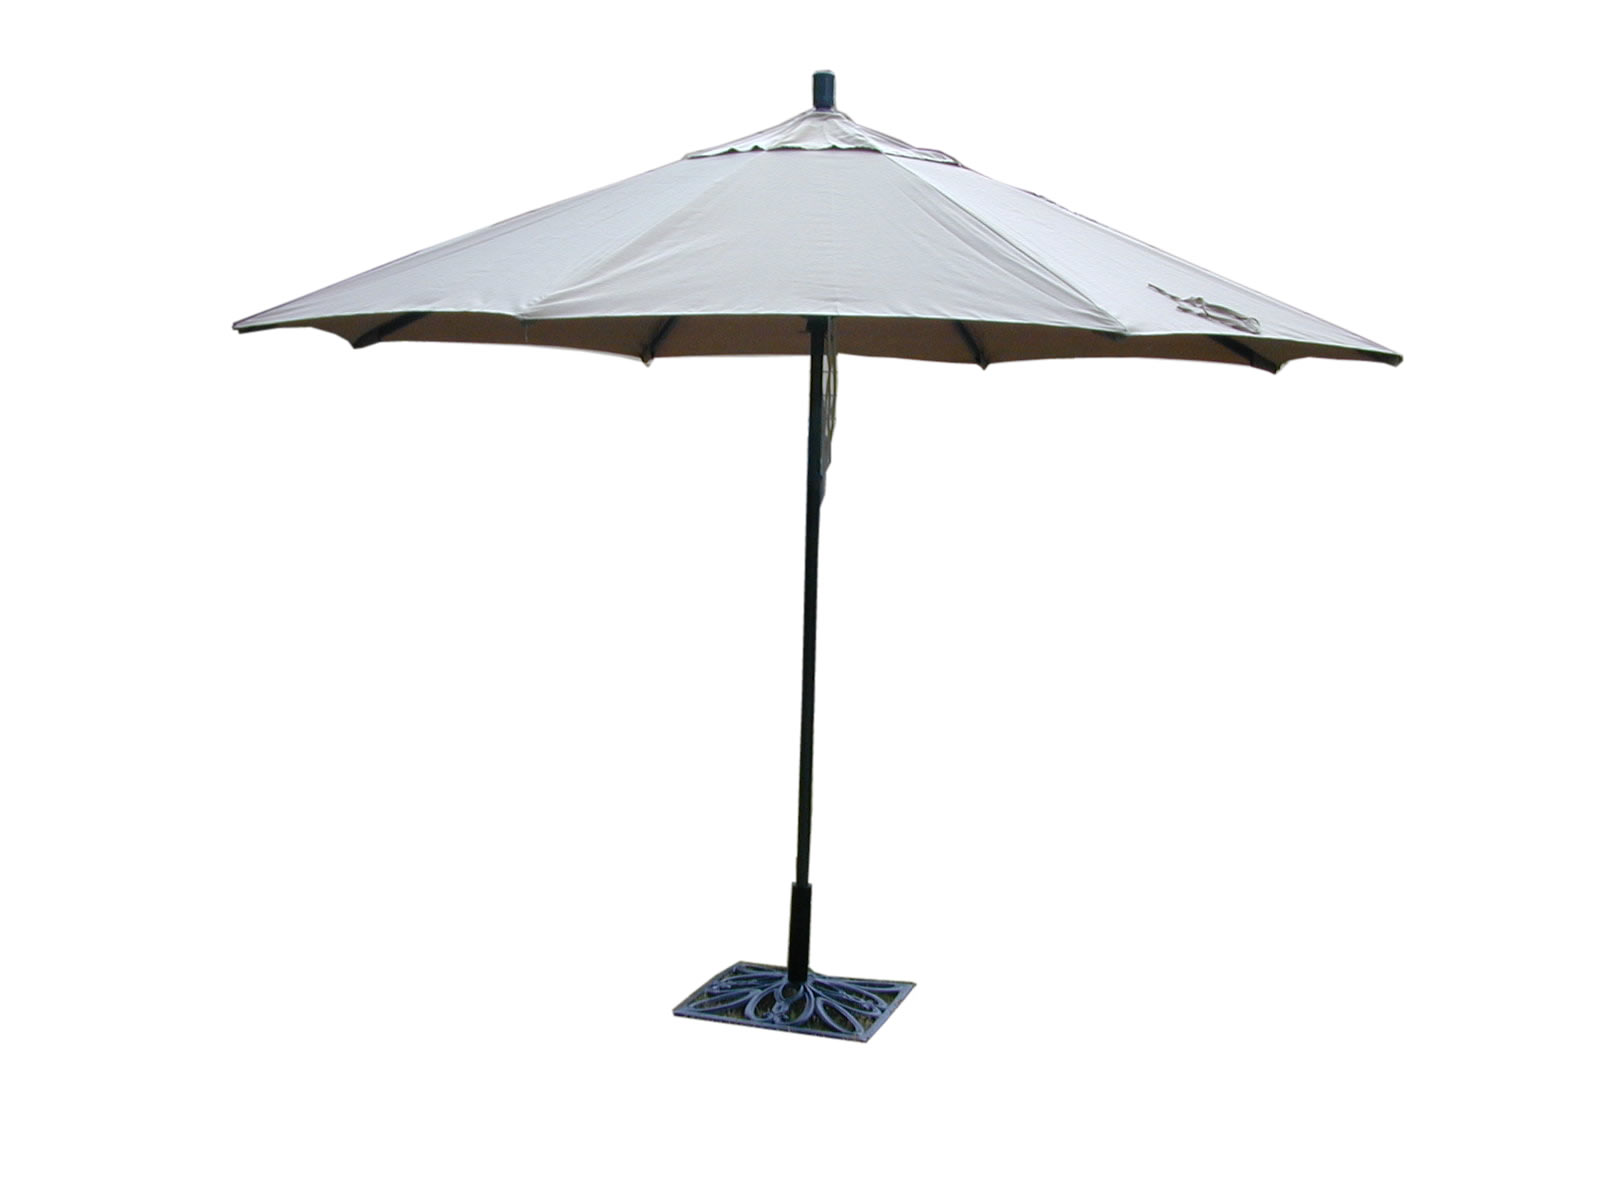 Market Umbrella Aluminum 11 Ft Sunbrella Heather Beige